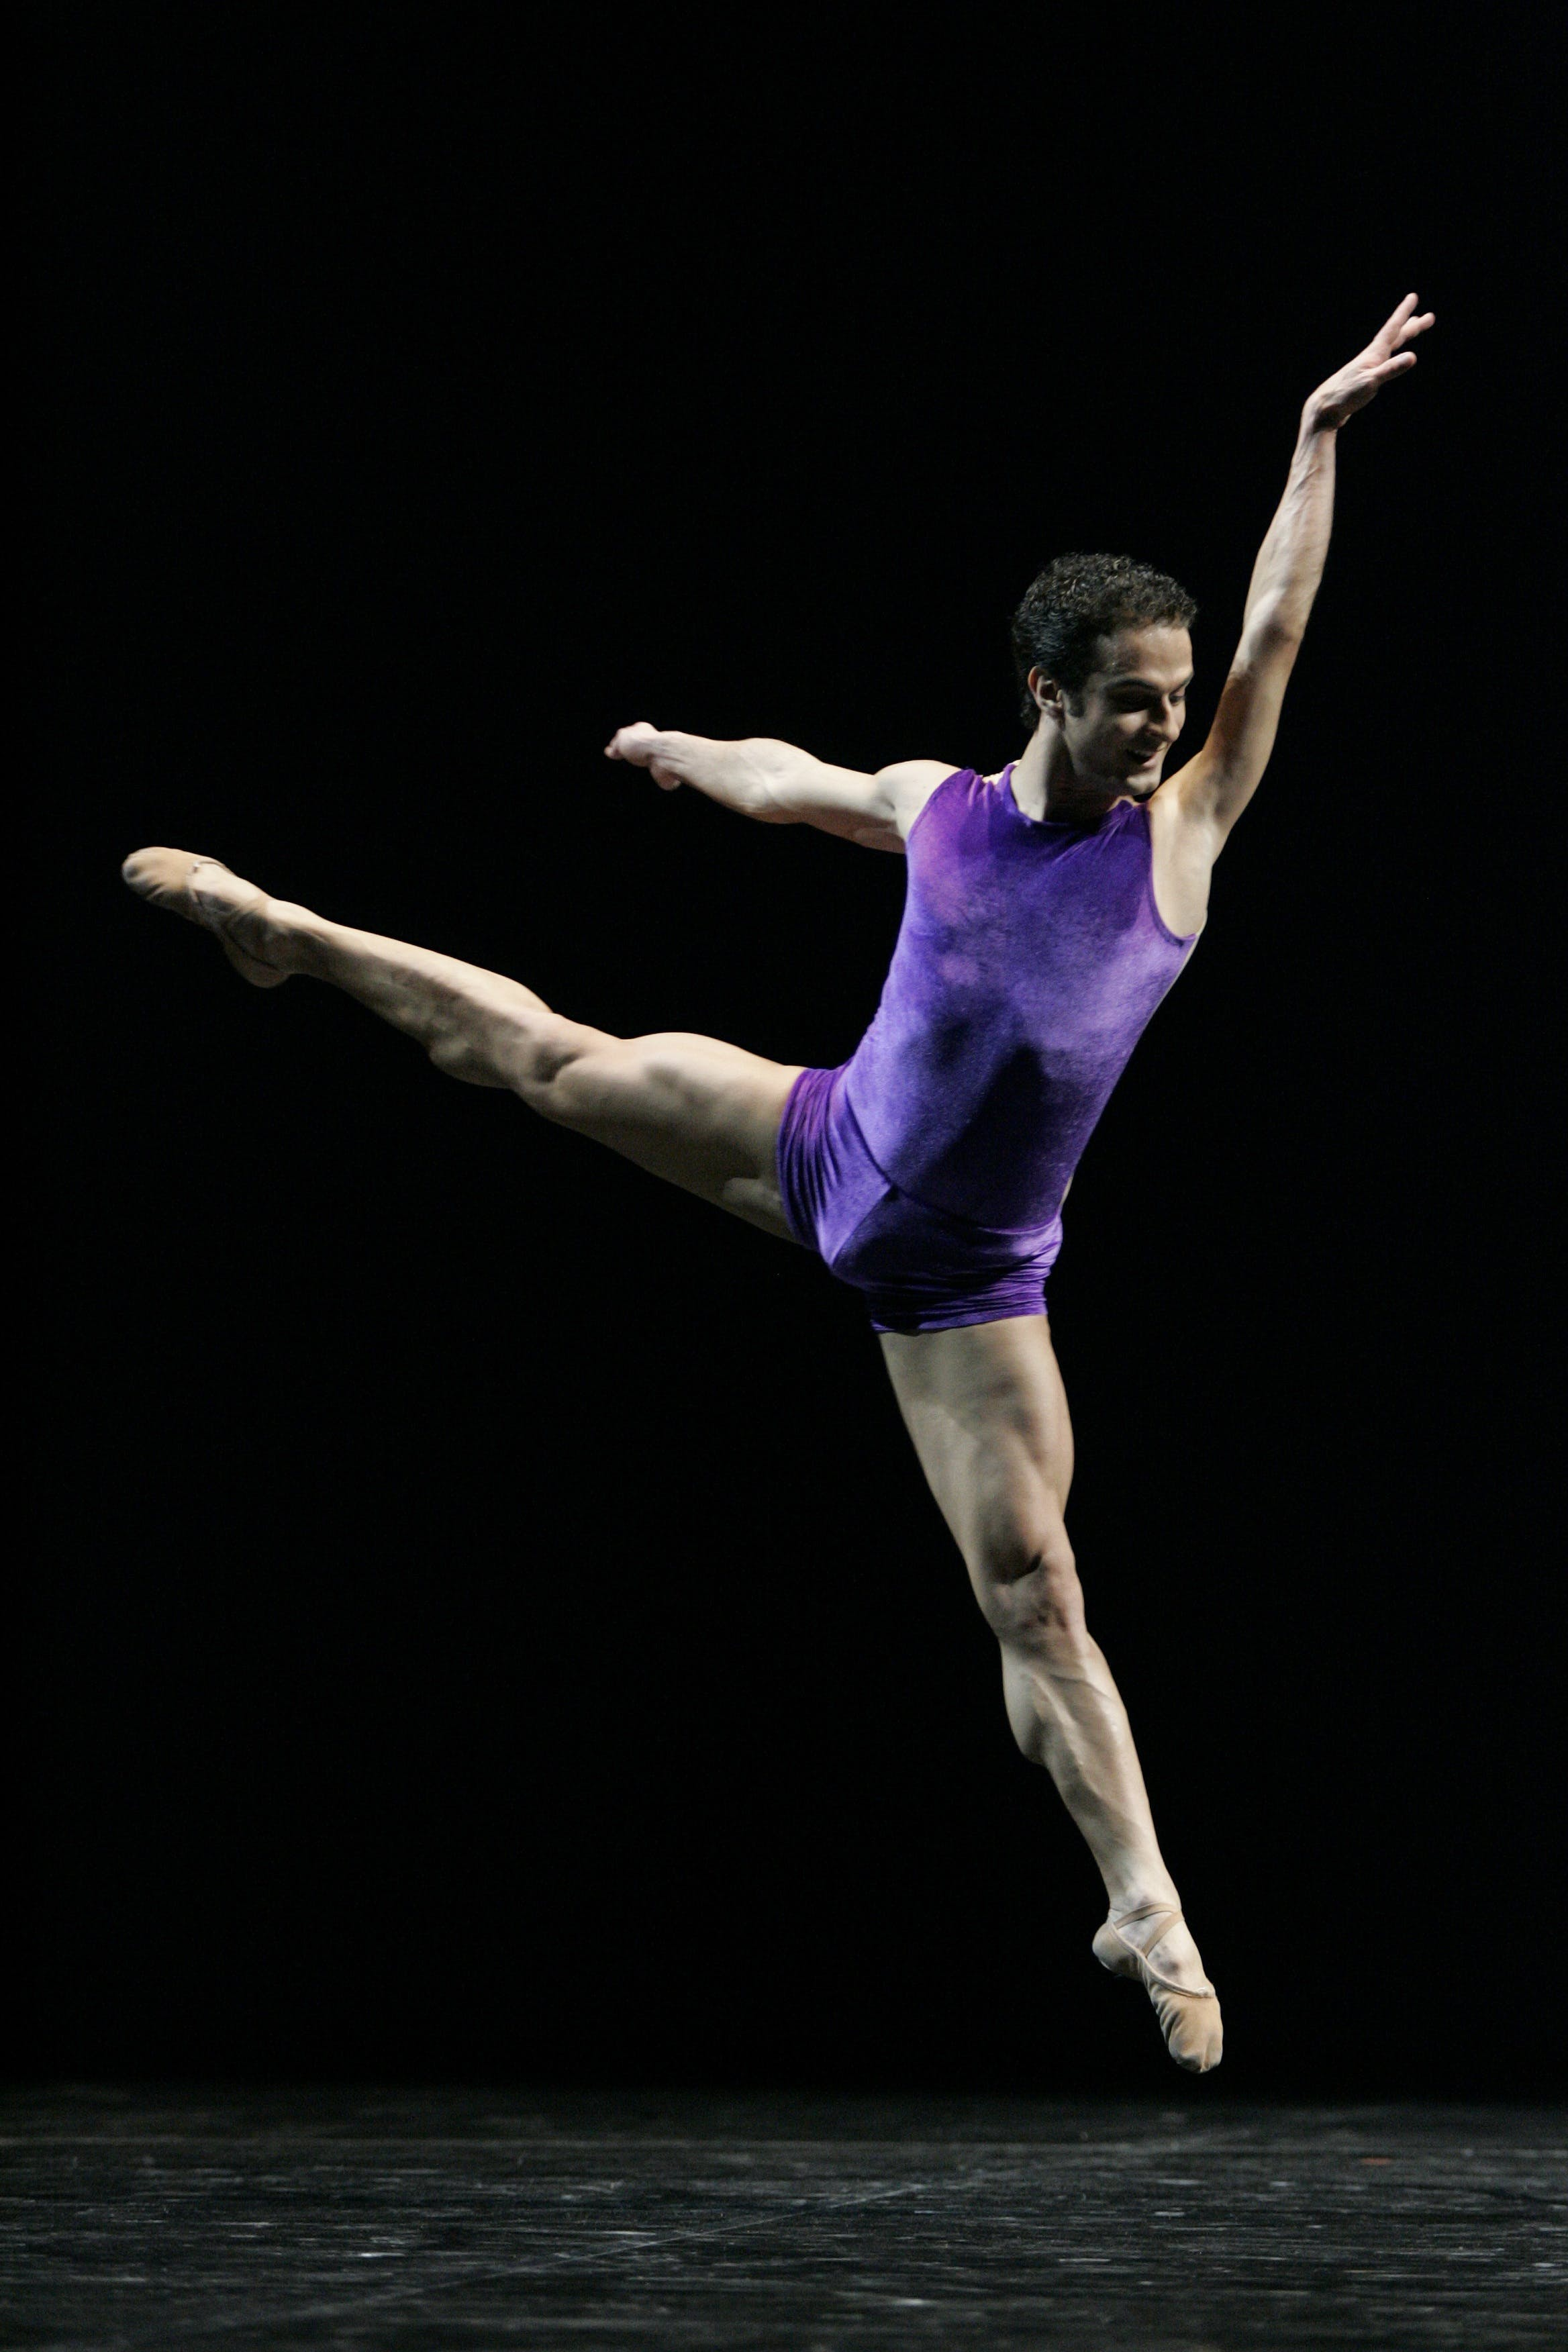 Man Performing Ballet Dancing